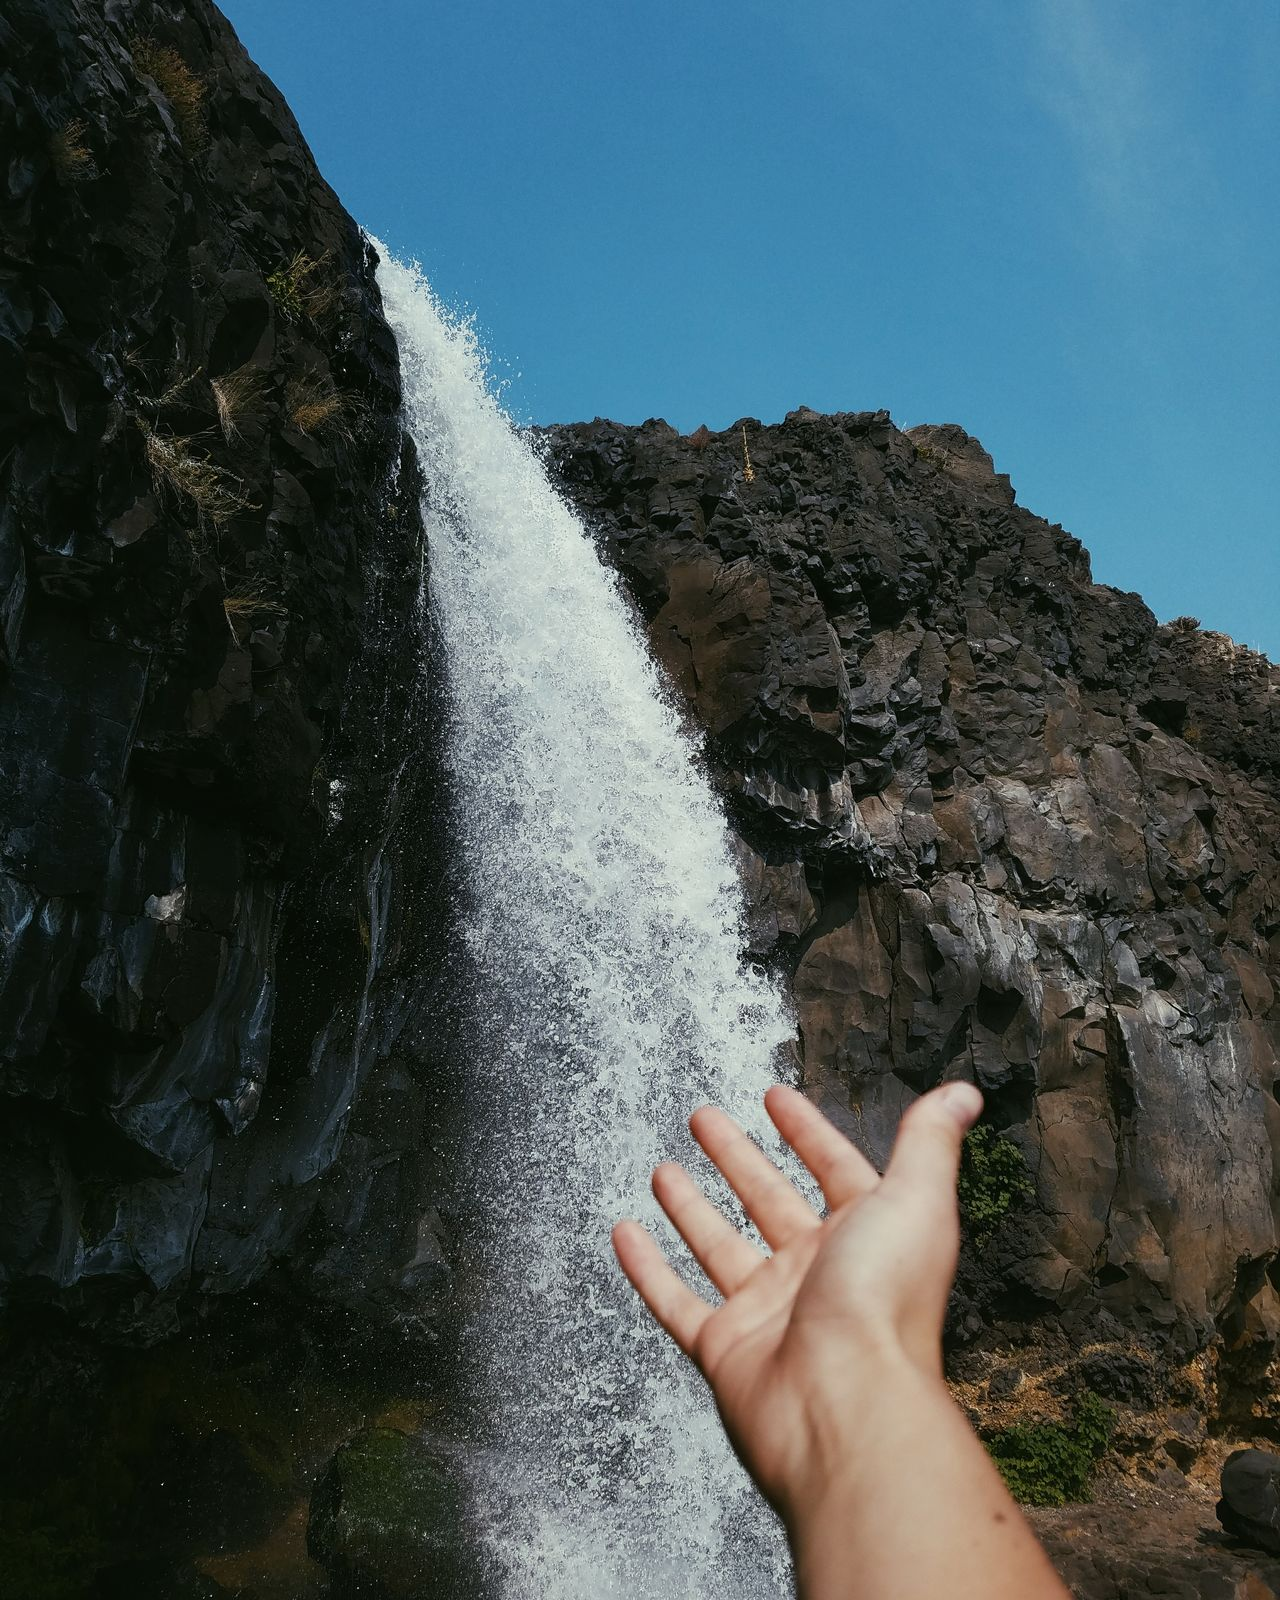 Cropped hand of woman by waterfall against sky